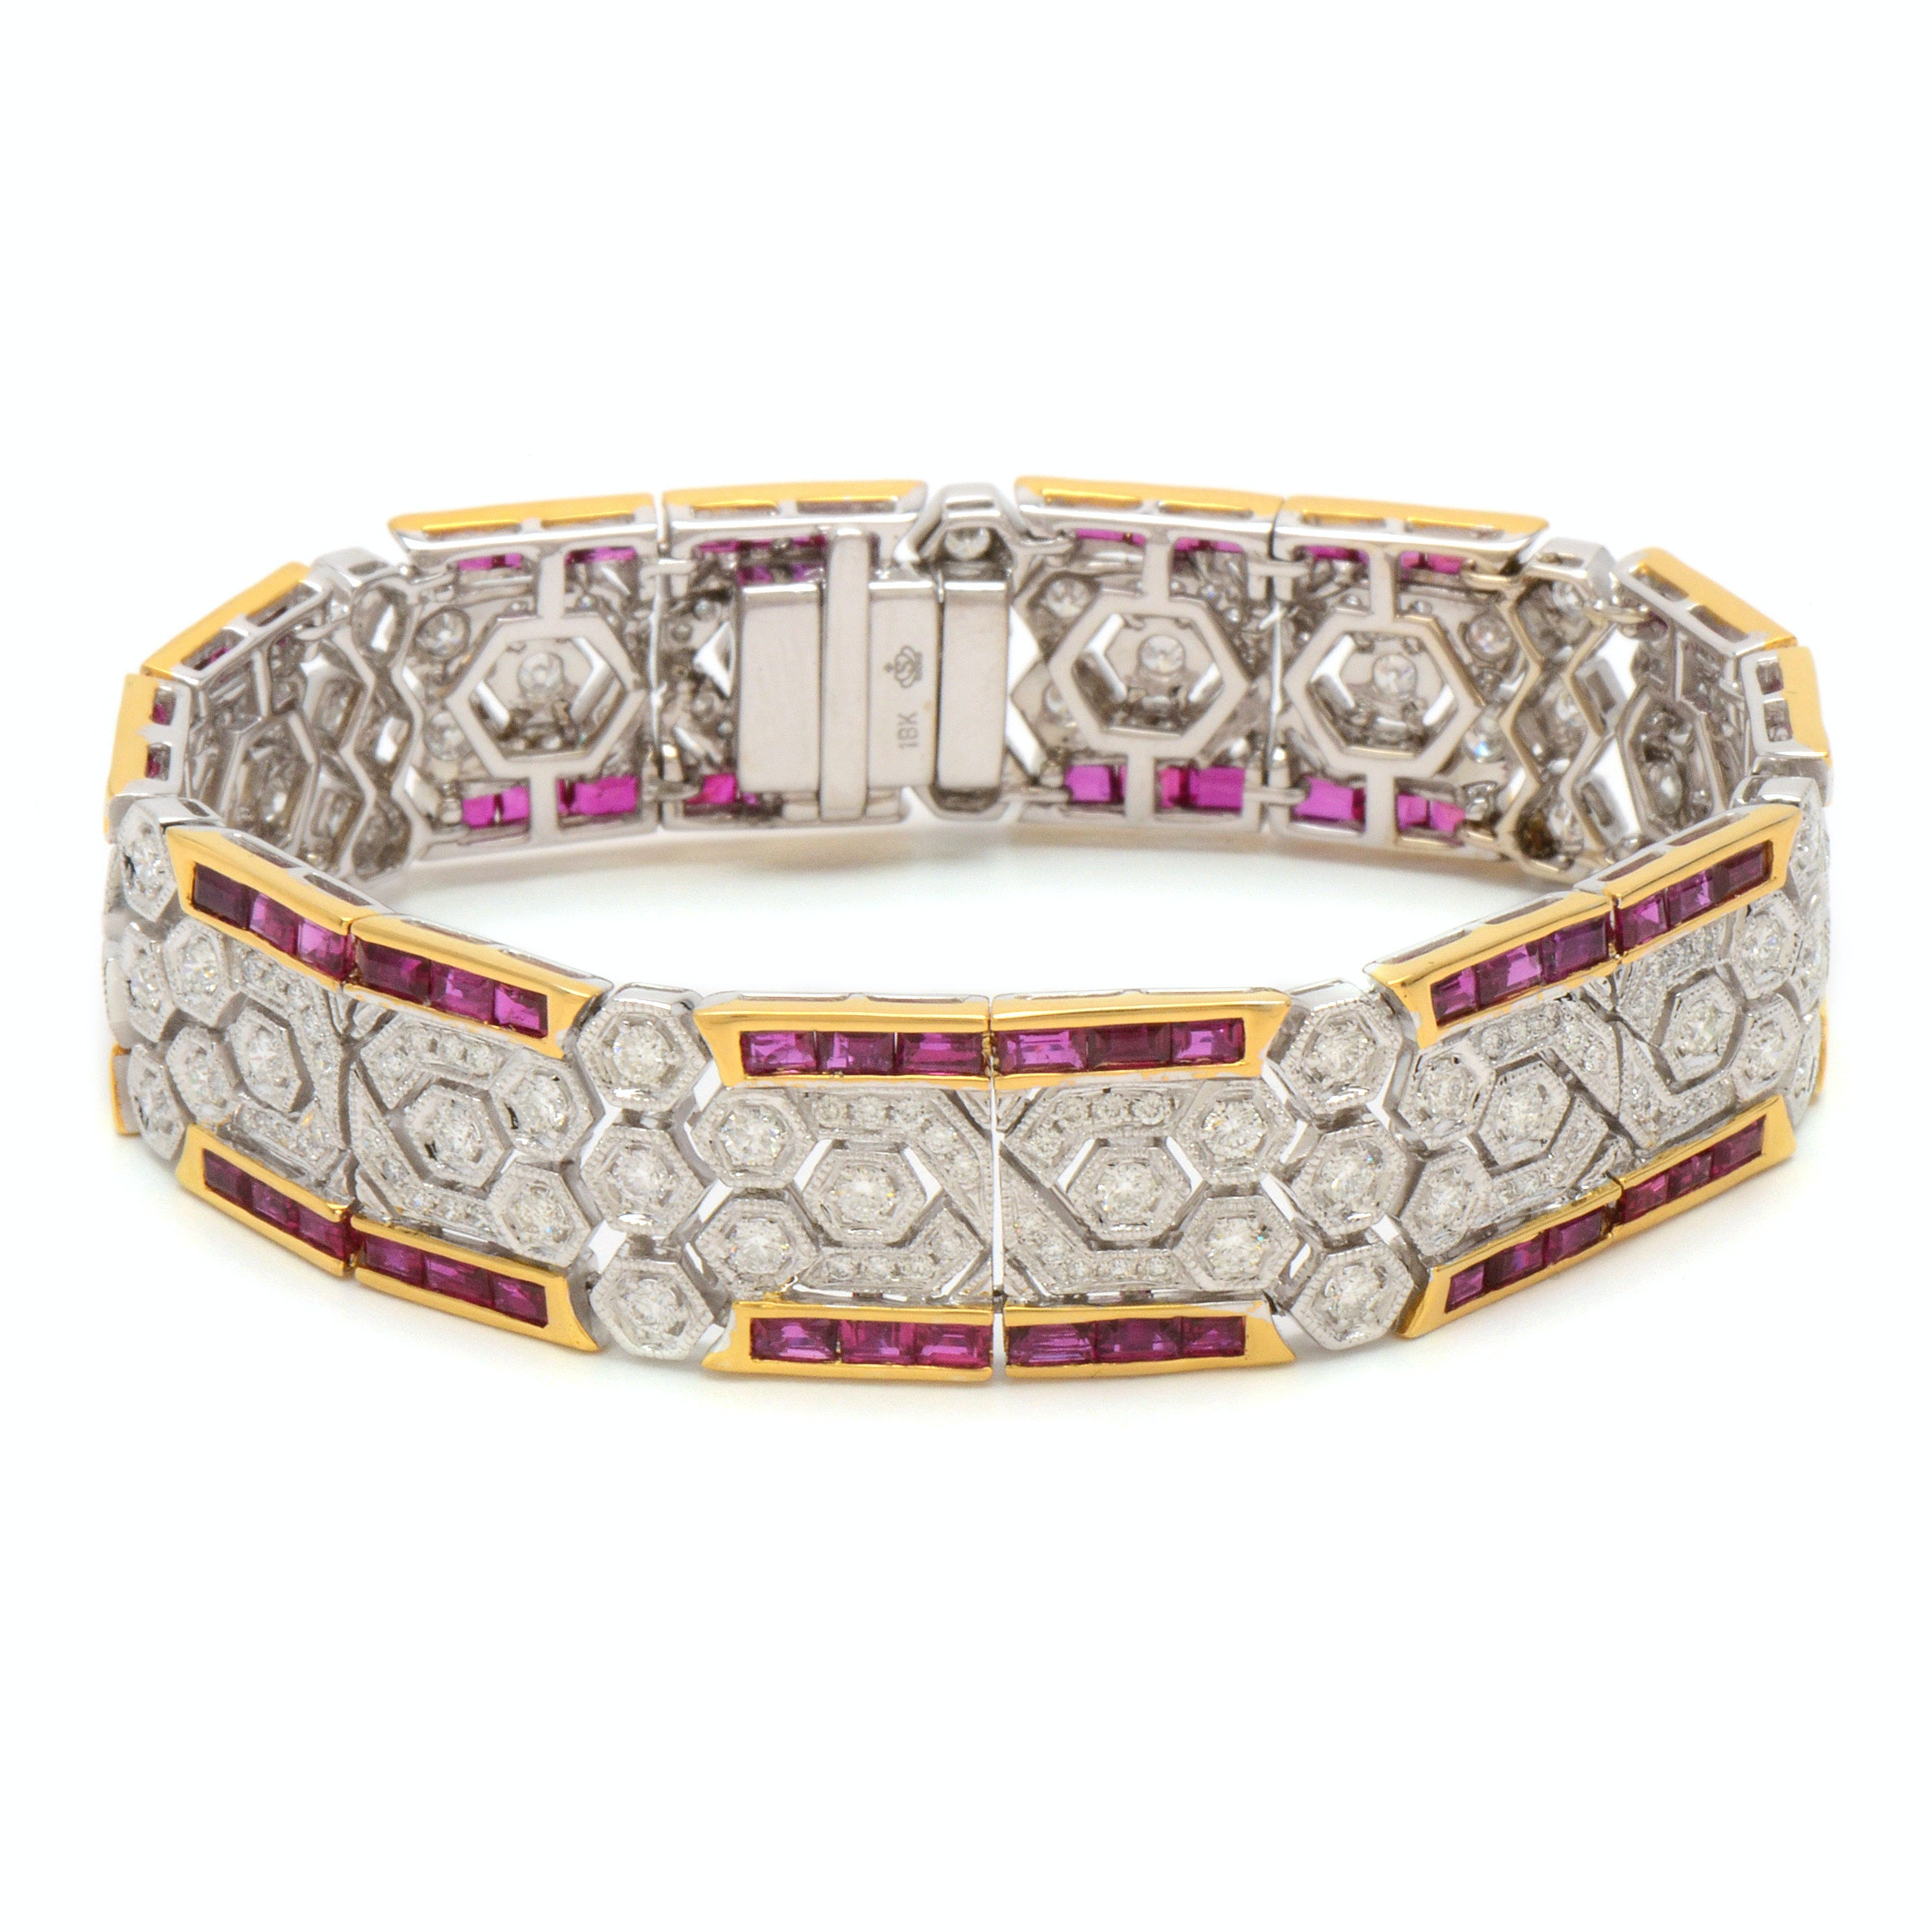 18K White Gold 3.40 CTW Diamond and Ruby Bracelet